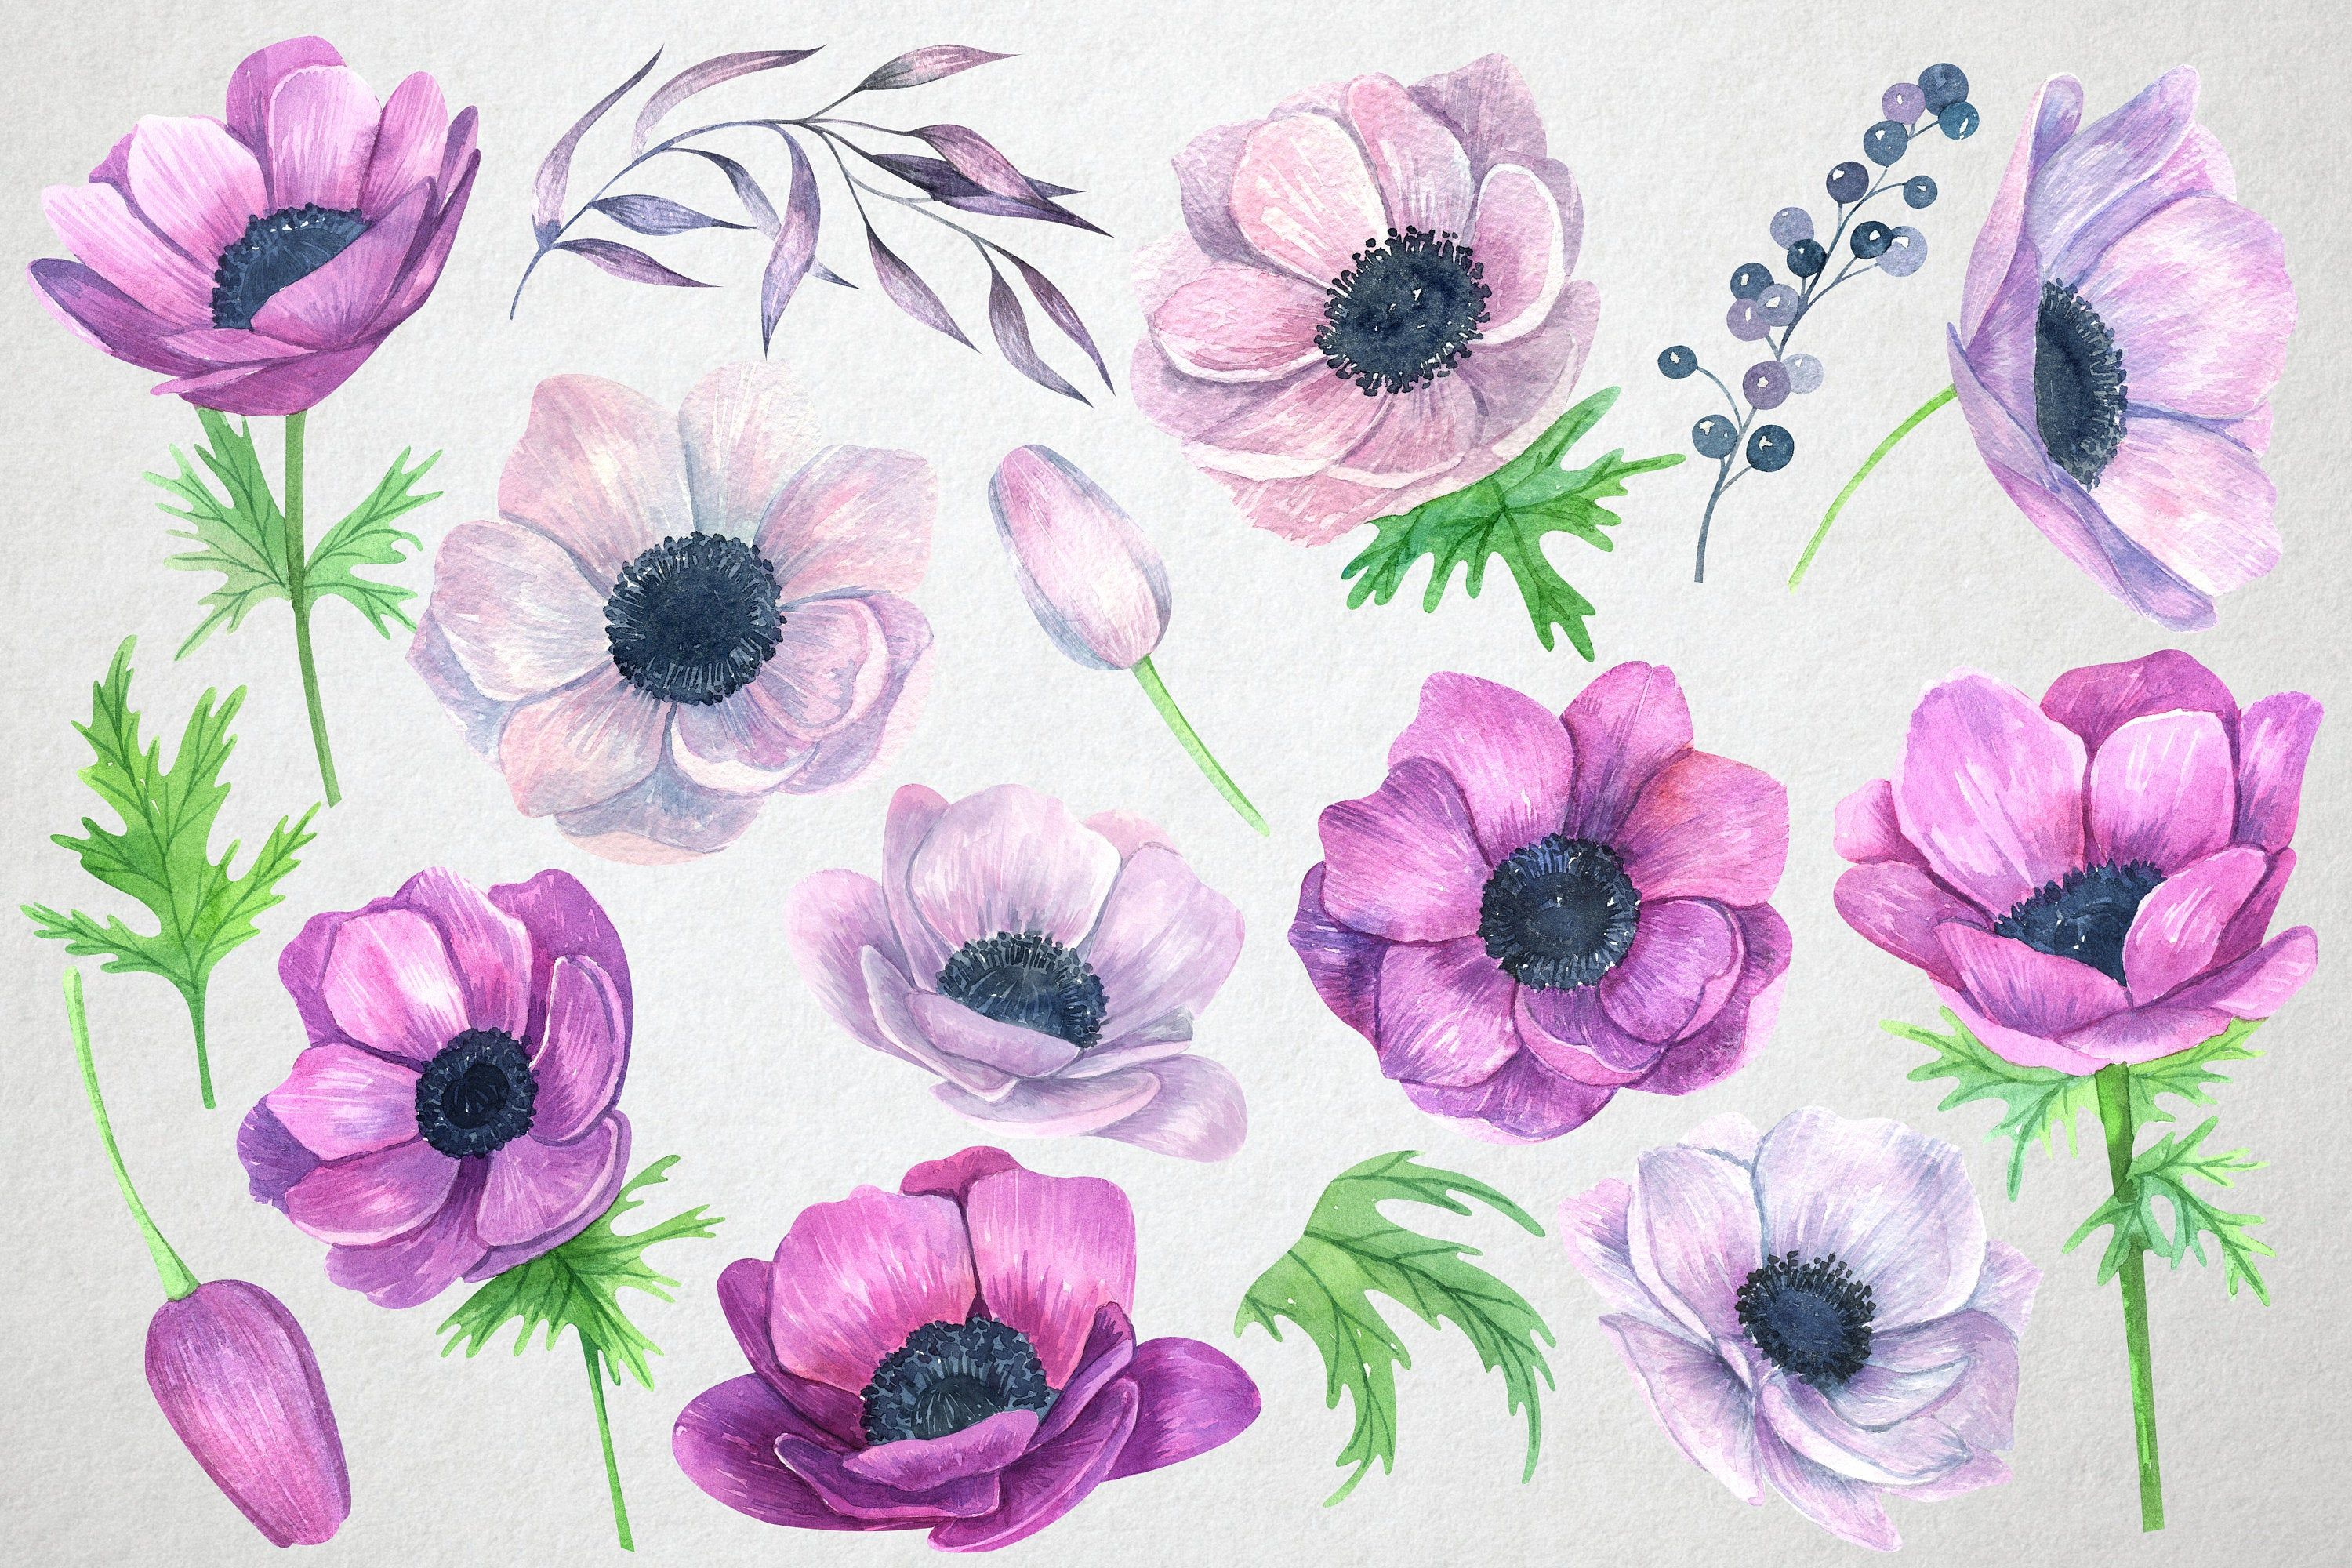 Watercolor Anemone Flowers Clipart Wedding Floral Clipart Etsy In 2020 Watercolor Flower Prints Floral Watercolor Watercolor Flowers